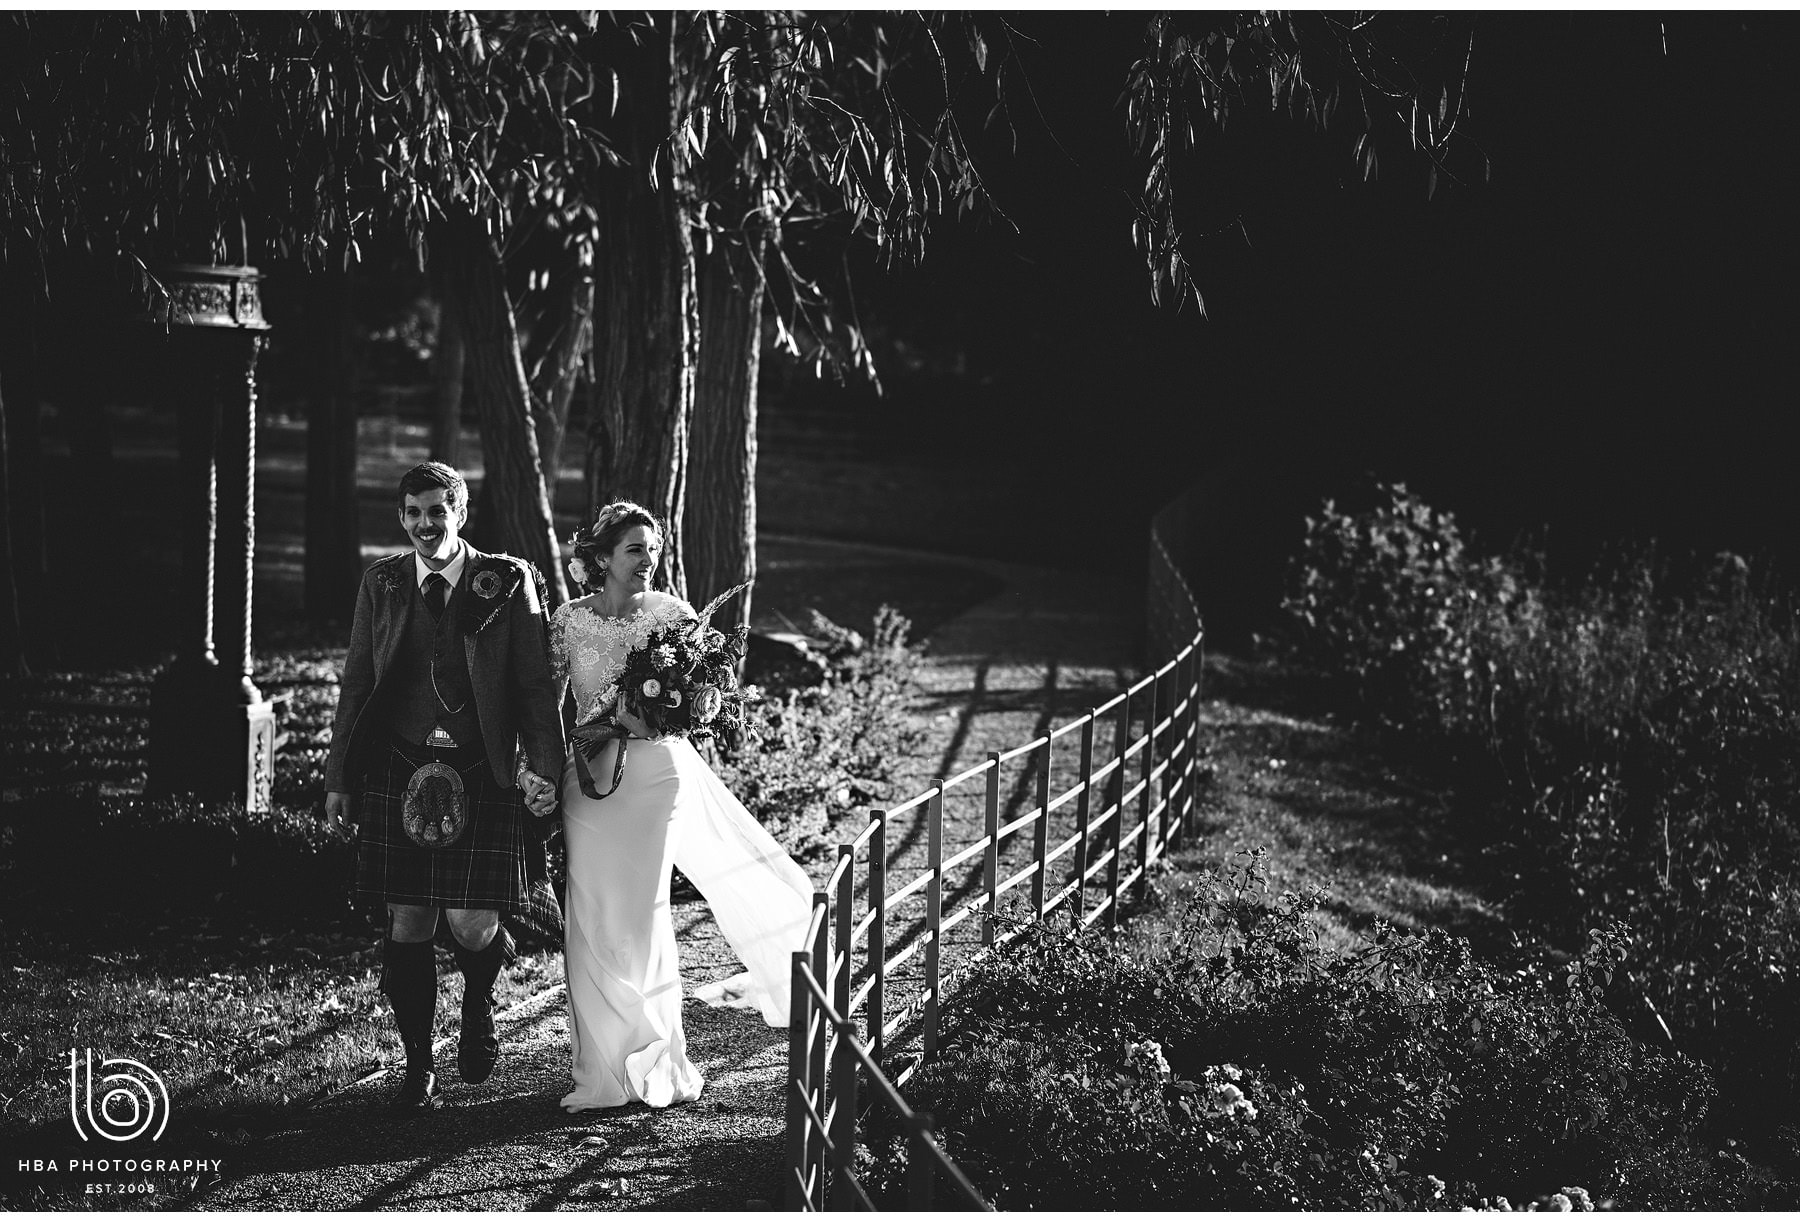 the bride & groom walking by the river